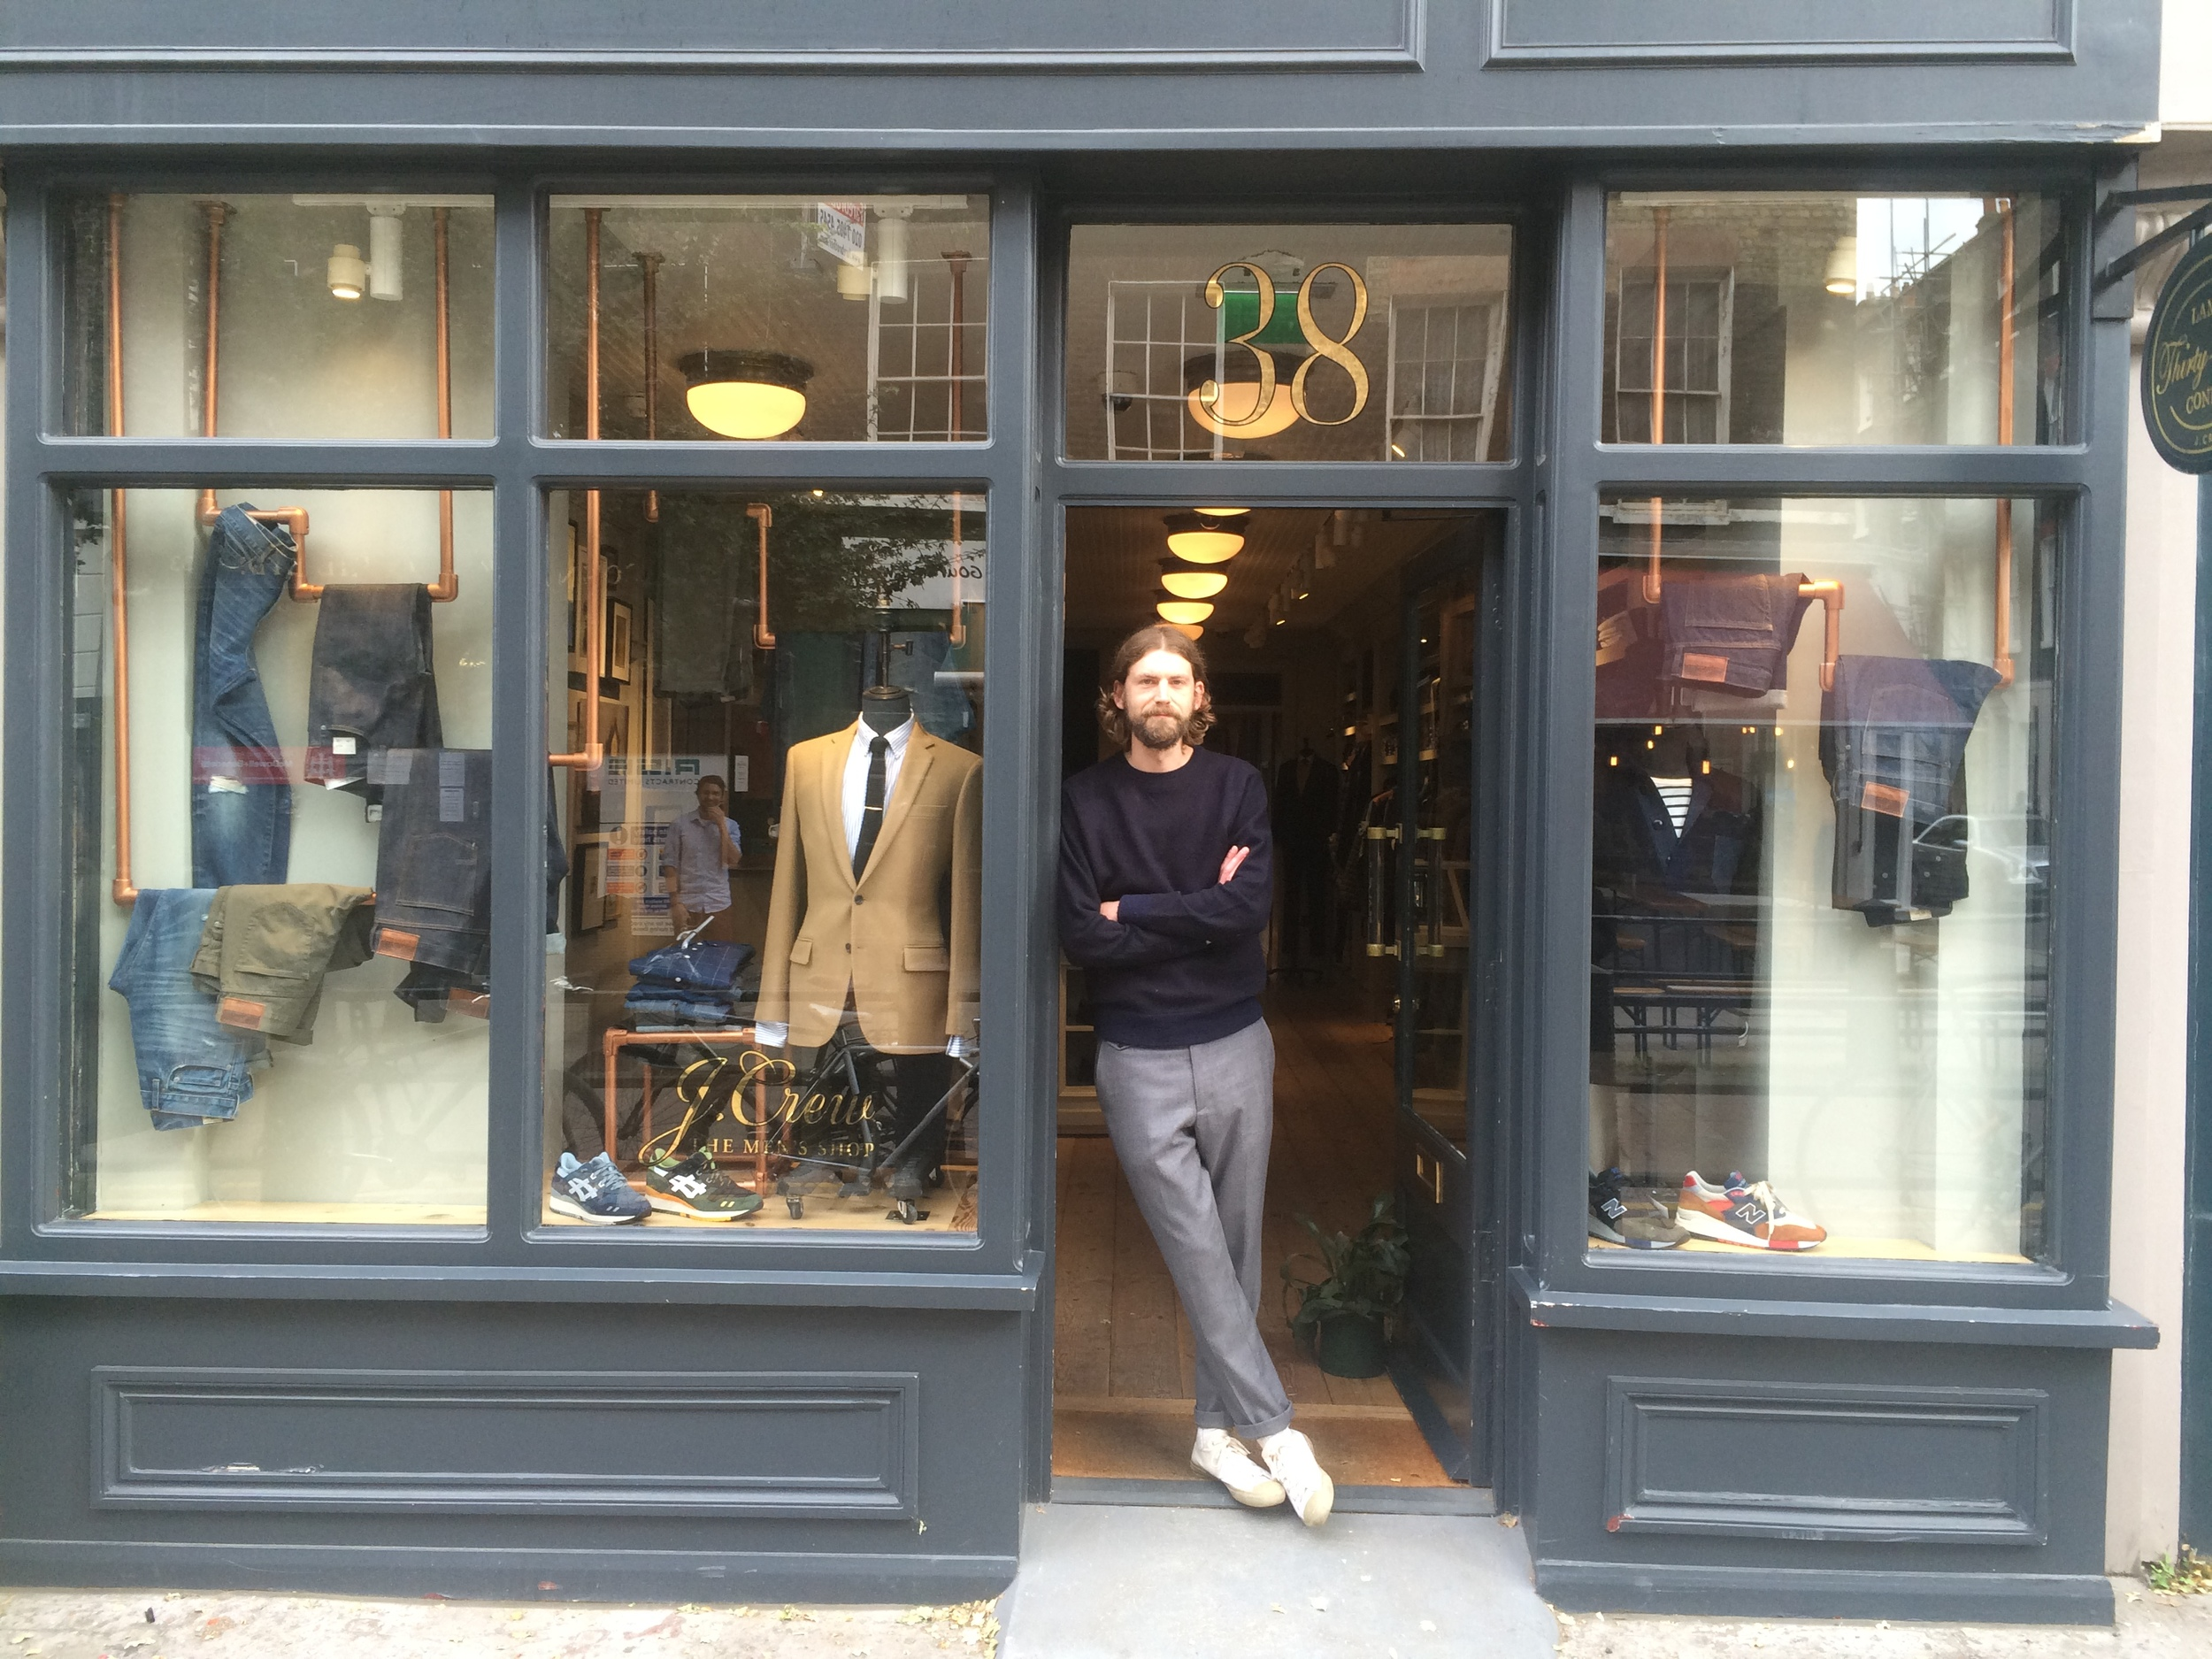 David, J.Crew 38 Lambs Conduit St